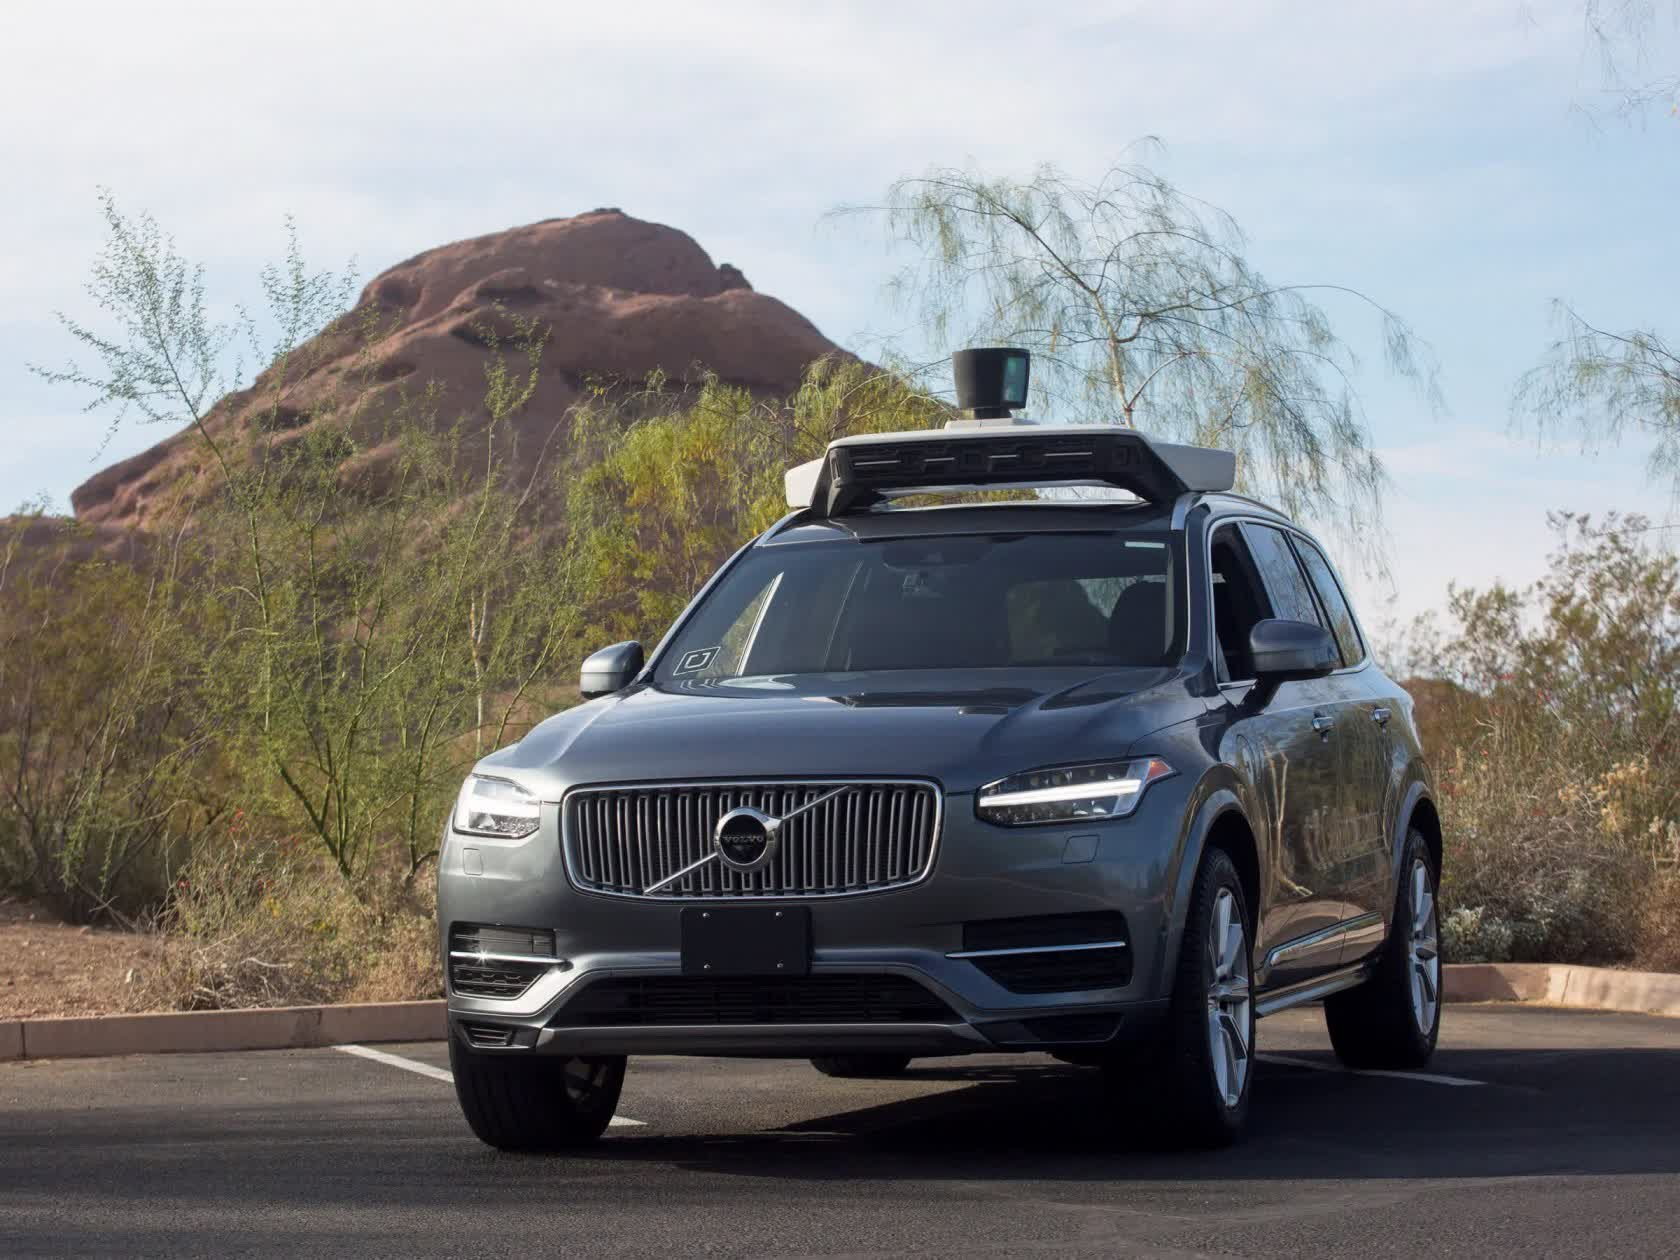 Uber might sell off its self-driving car division following past controversies